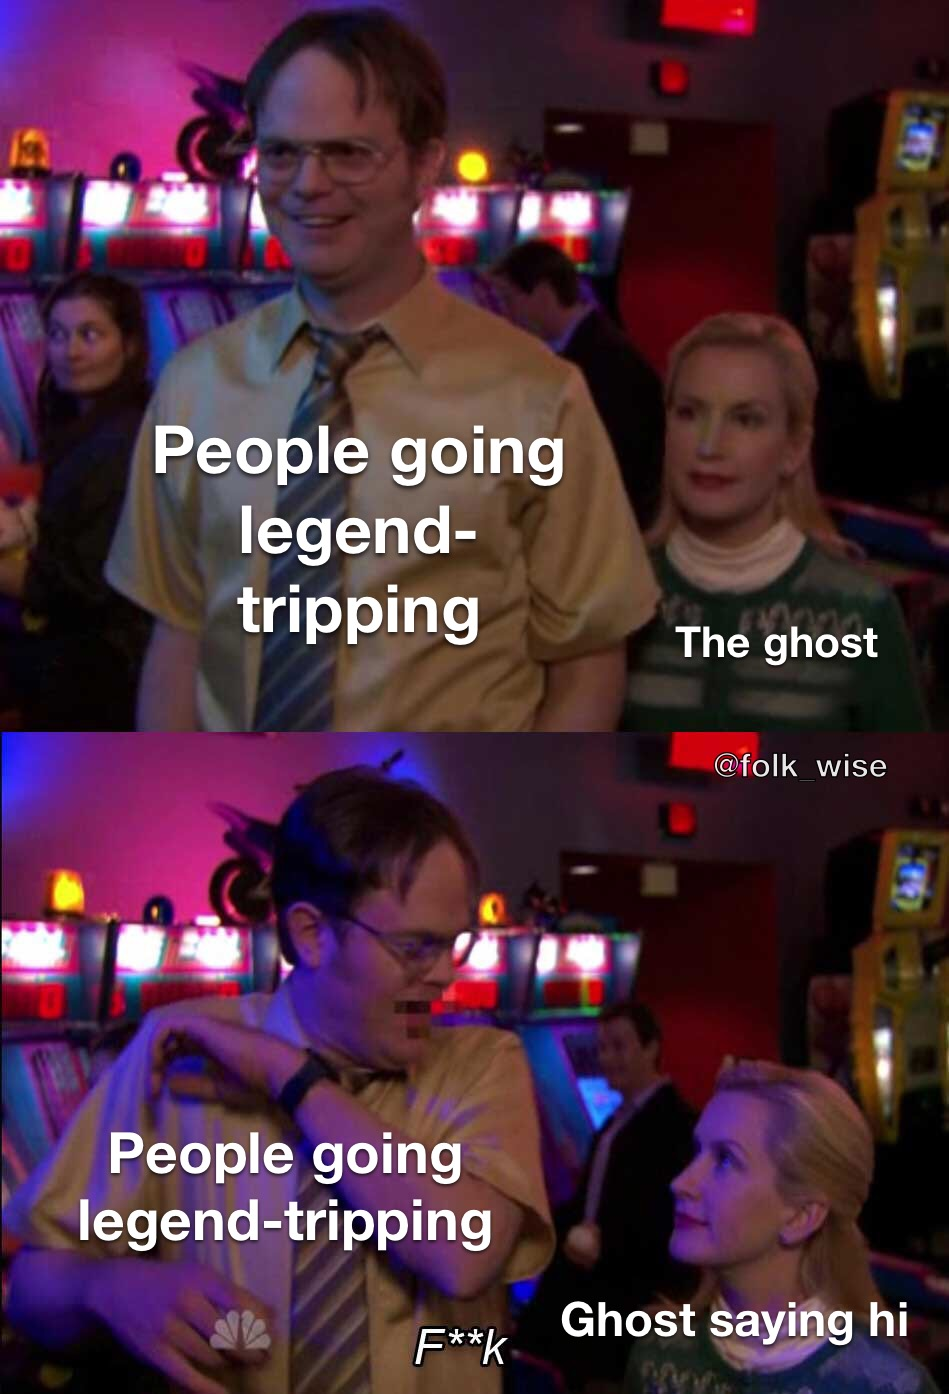 """A screenshot of two successive moments in the Office. Dwight Schrute, a tall, nerdy white man, stands in a bar with bright lights and people in the background, while Angela Kinsey, a small blonde white woman, approaches Dwight from behind. When Dwight sees her, he exclaims, """"F*ck!"""" Dwight is labeled """"People going Legend-Tripping"""" in both panels and Angela is labeled """"The ghost"""" and then """"The Ghost Saying Hi"""" in white text in each panel respectively. Dwight makes a scared face when he sees Angela in the second panel."""